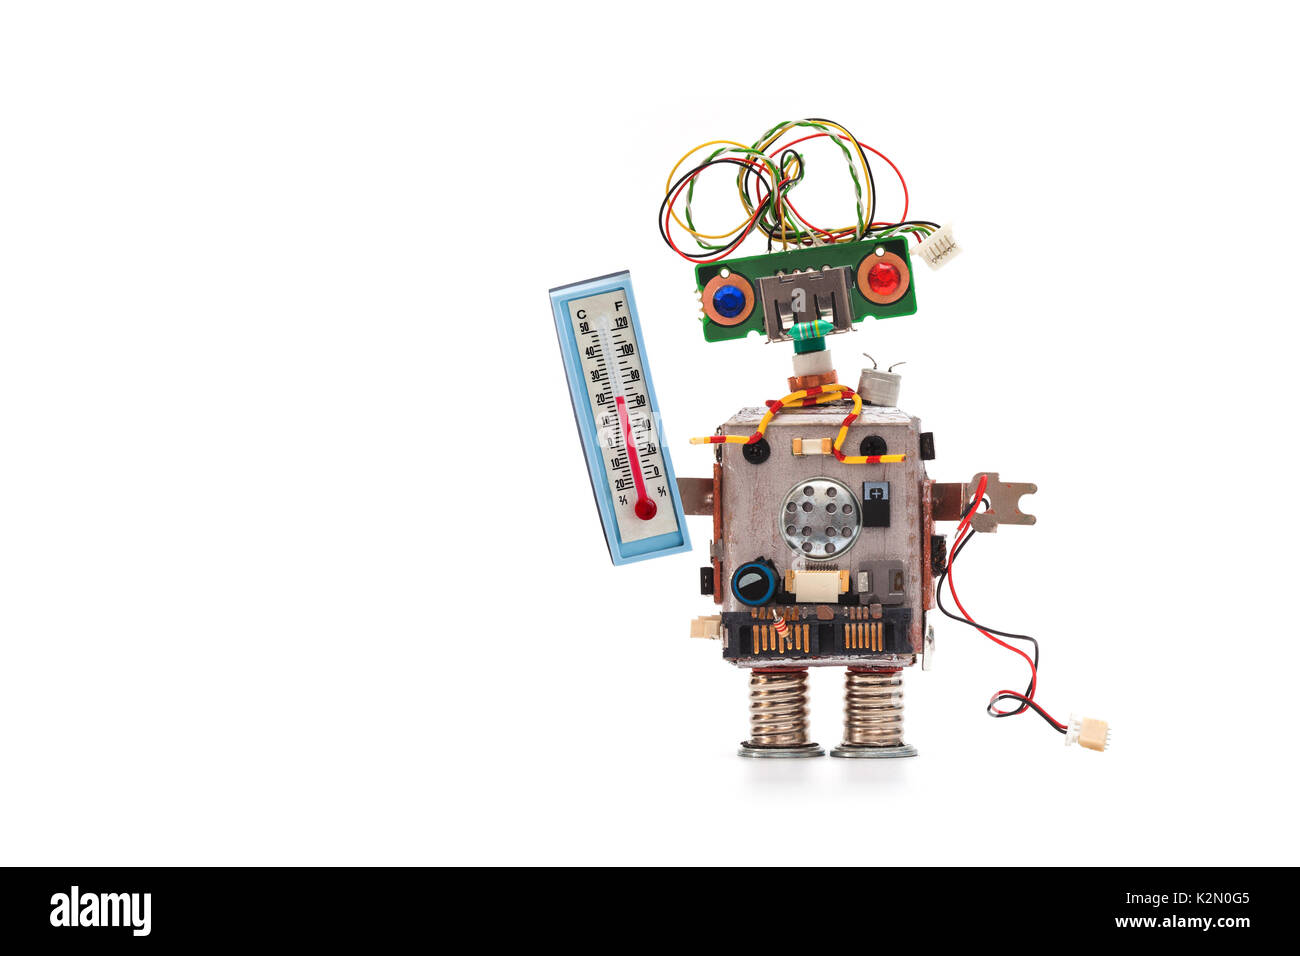 Weather forecaster robot with thermometer displaying room temperature thermal comfort level. Climate control concept photo. Copy space white background. - Stock Image